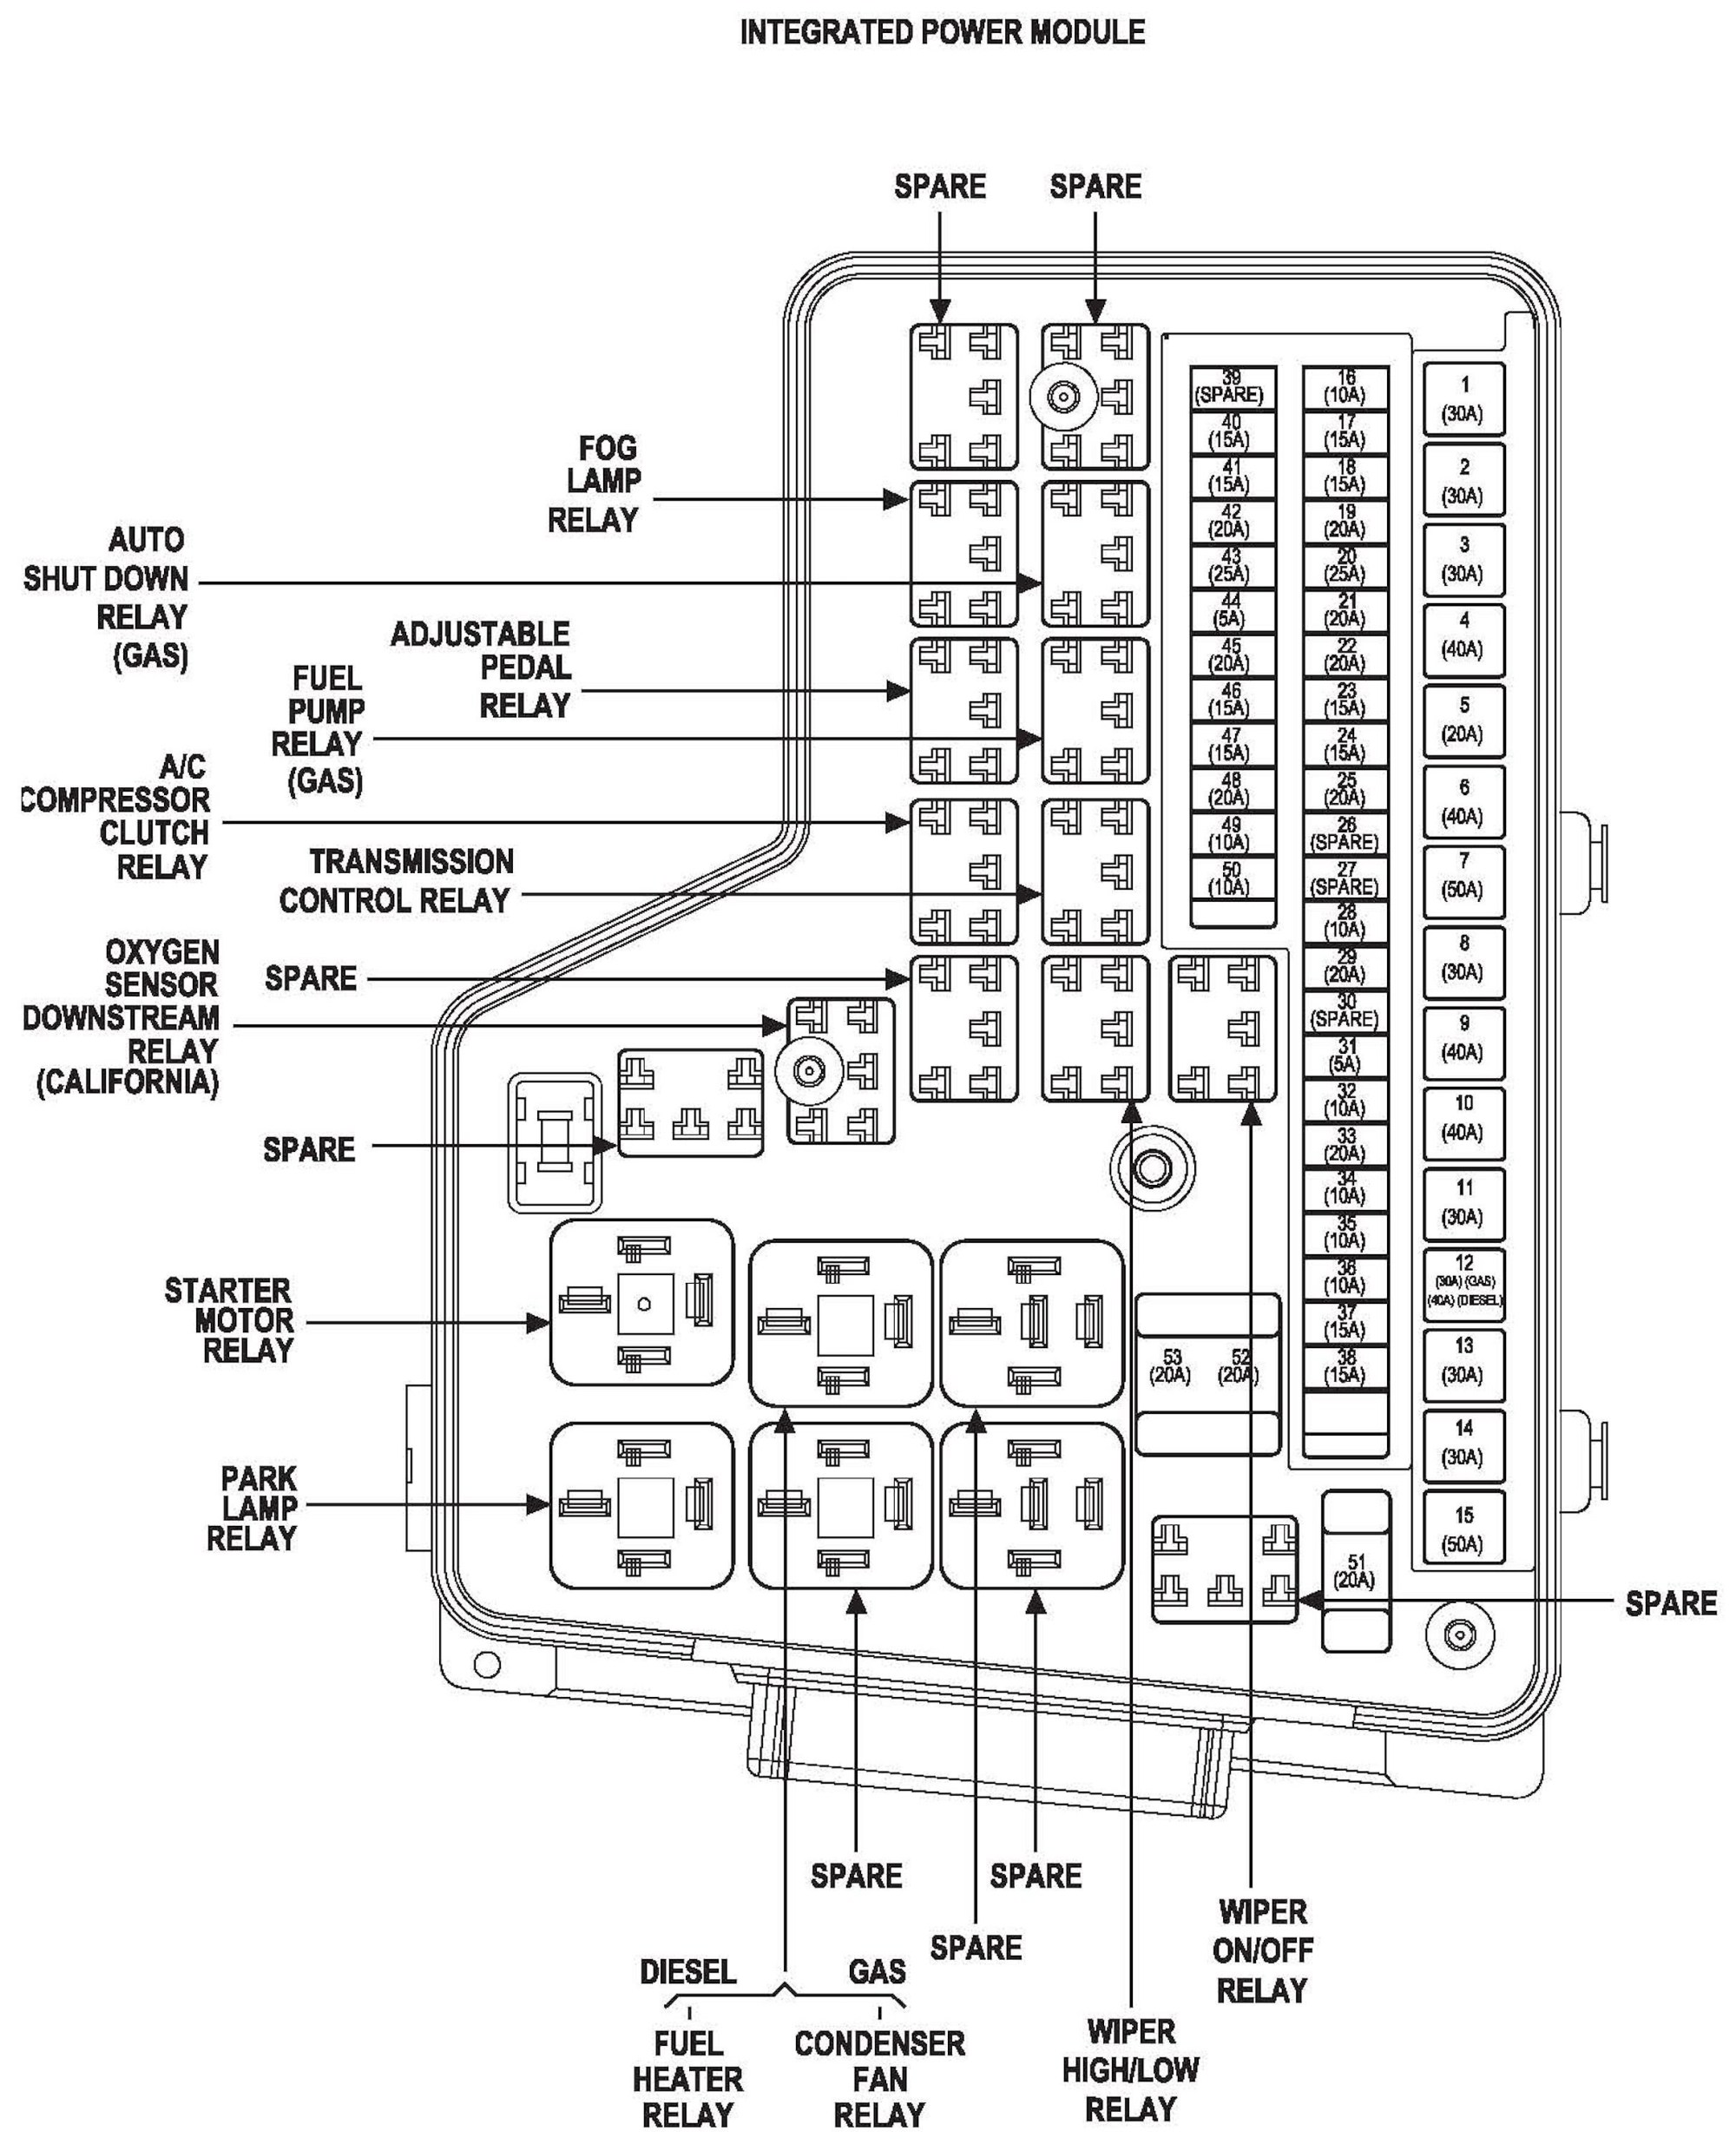 hight resolution of 1996 dodge ram 2500 fuse box diagram wiring diagram technic 1996 dodge ram van radio wiring